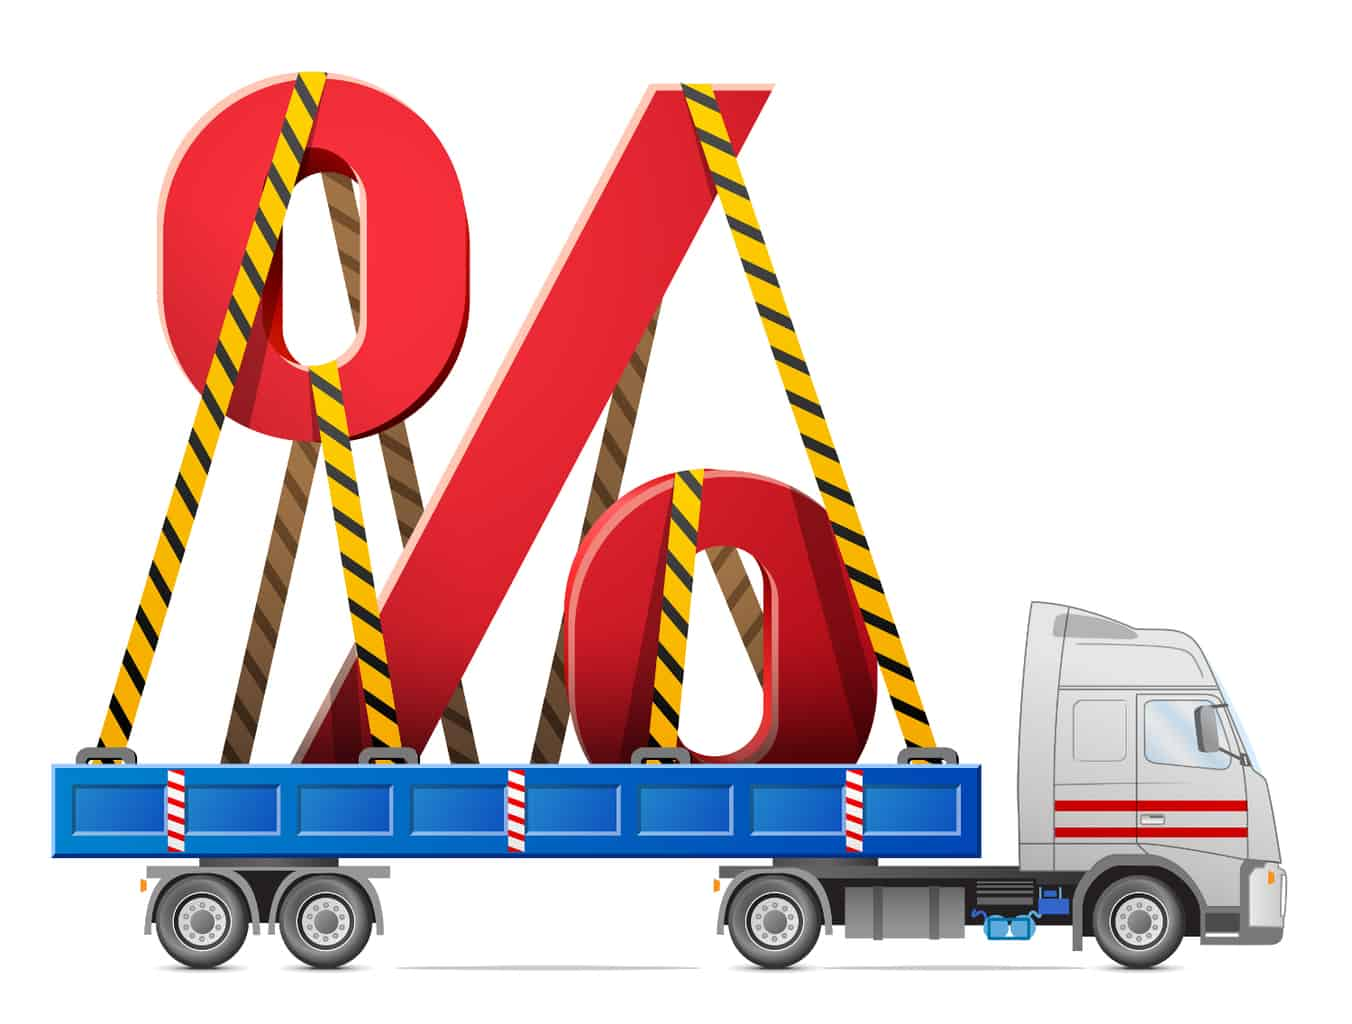 Finding the right hauling rate for your operation - FreightWaves